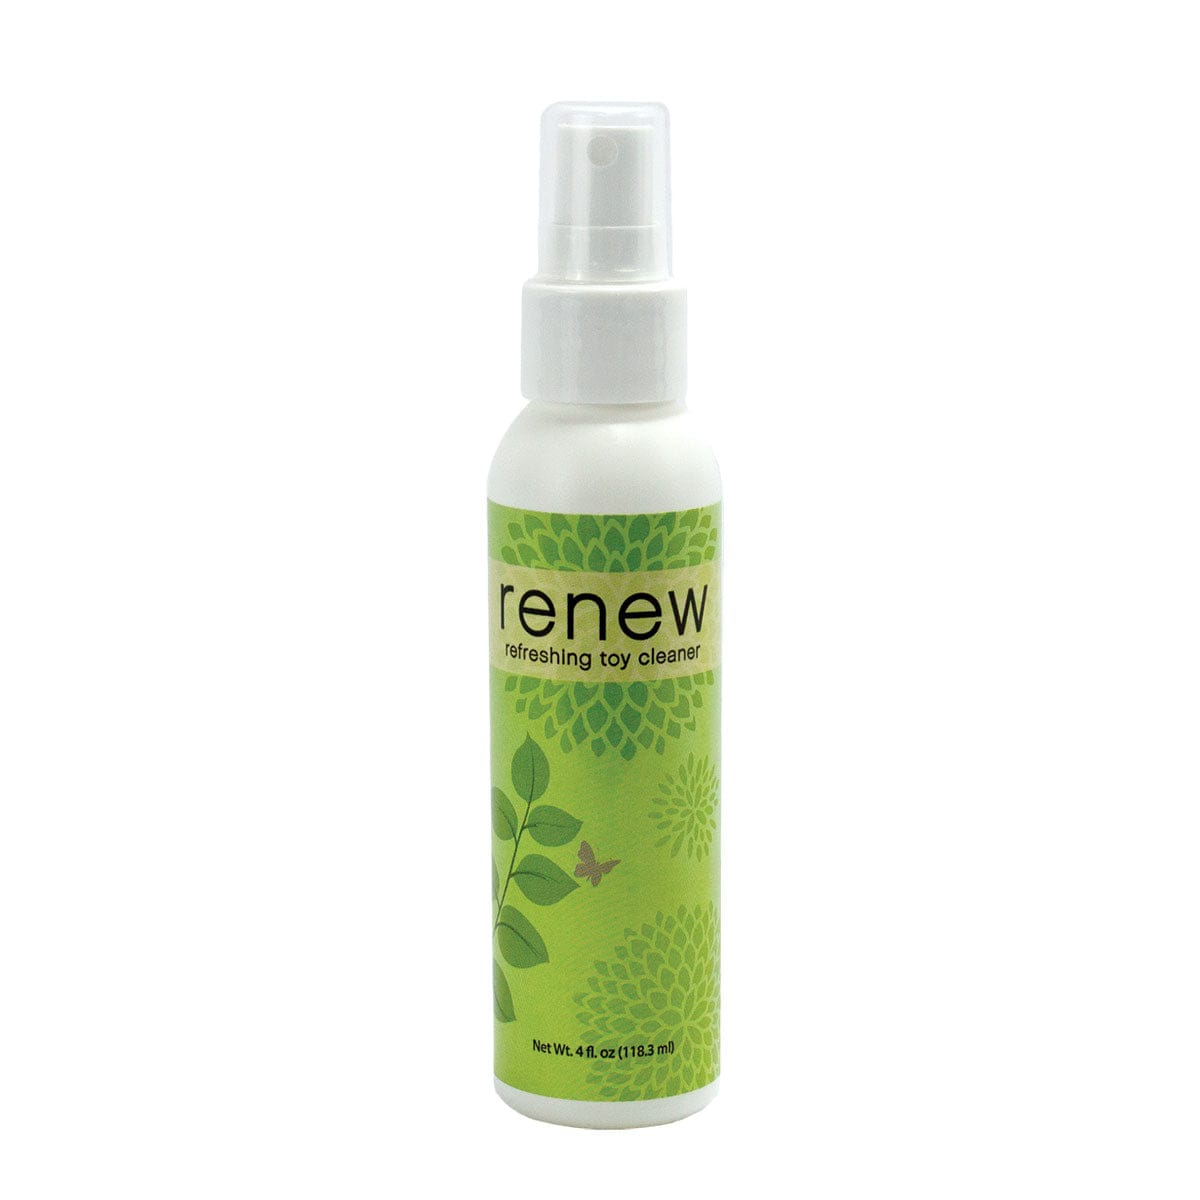 Renew Toy Cleaner by Pleasure Works - rolik